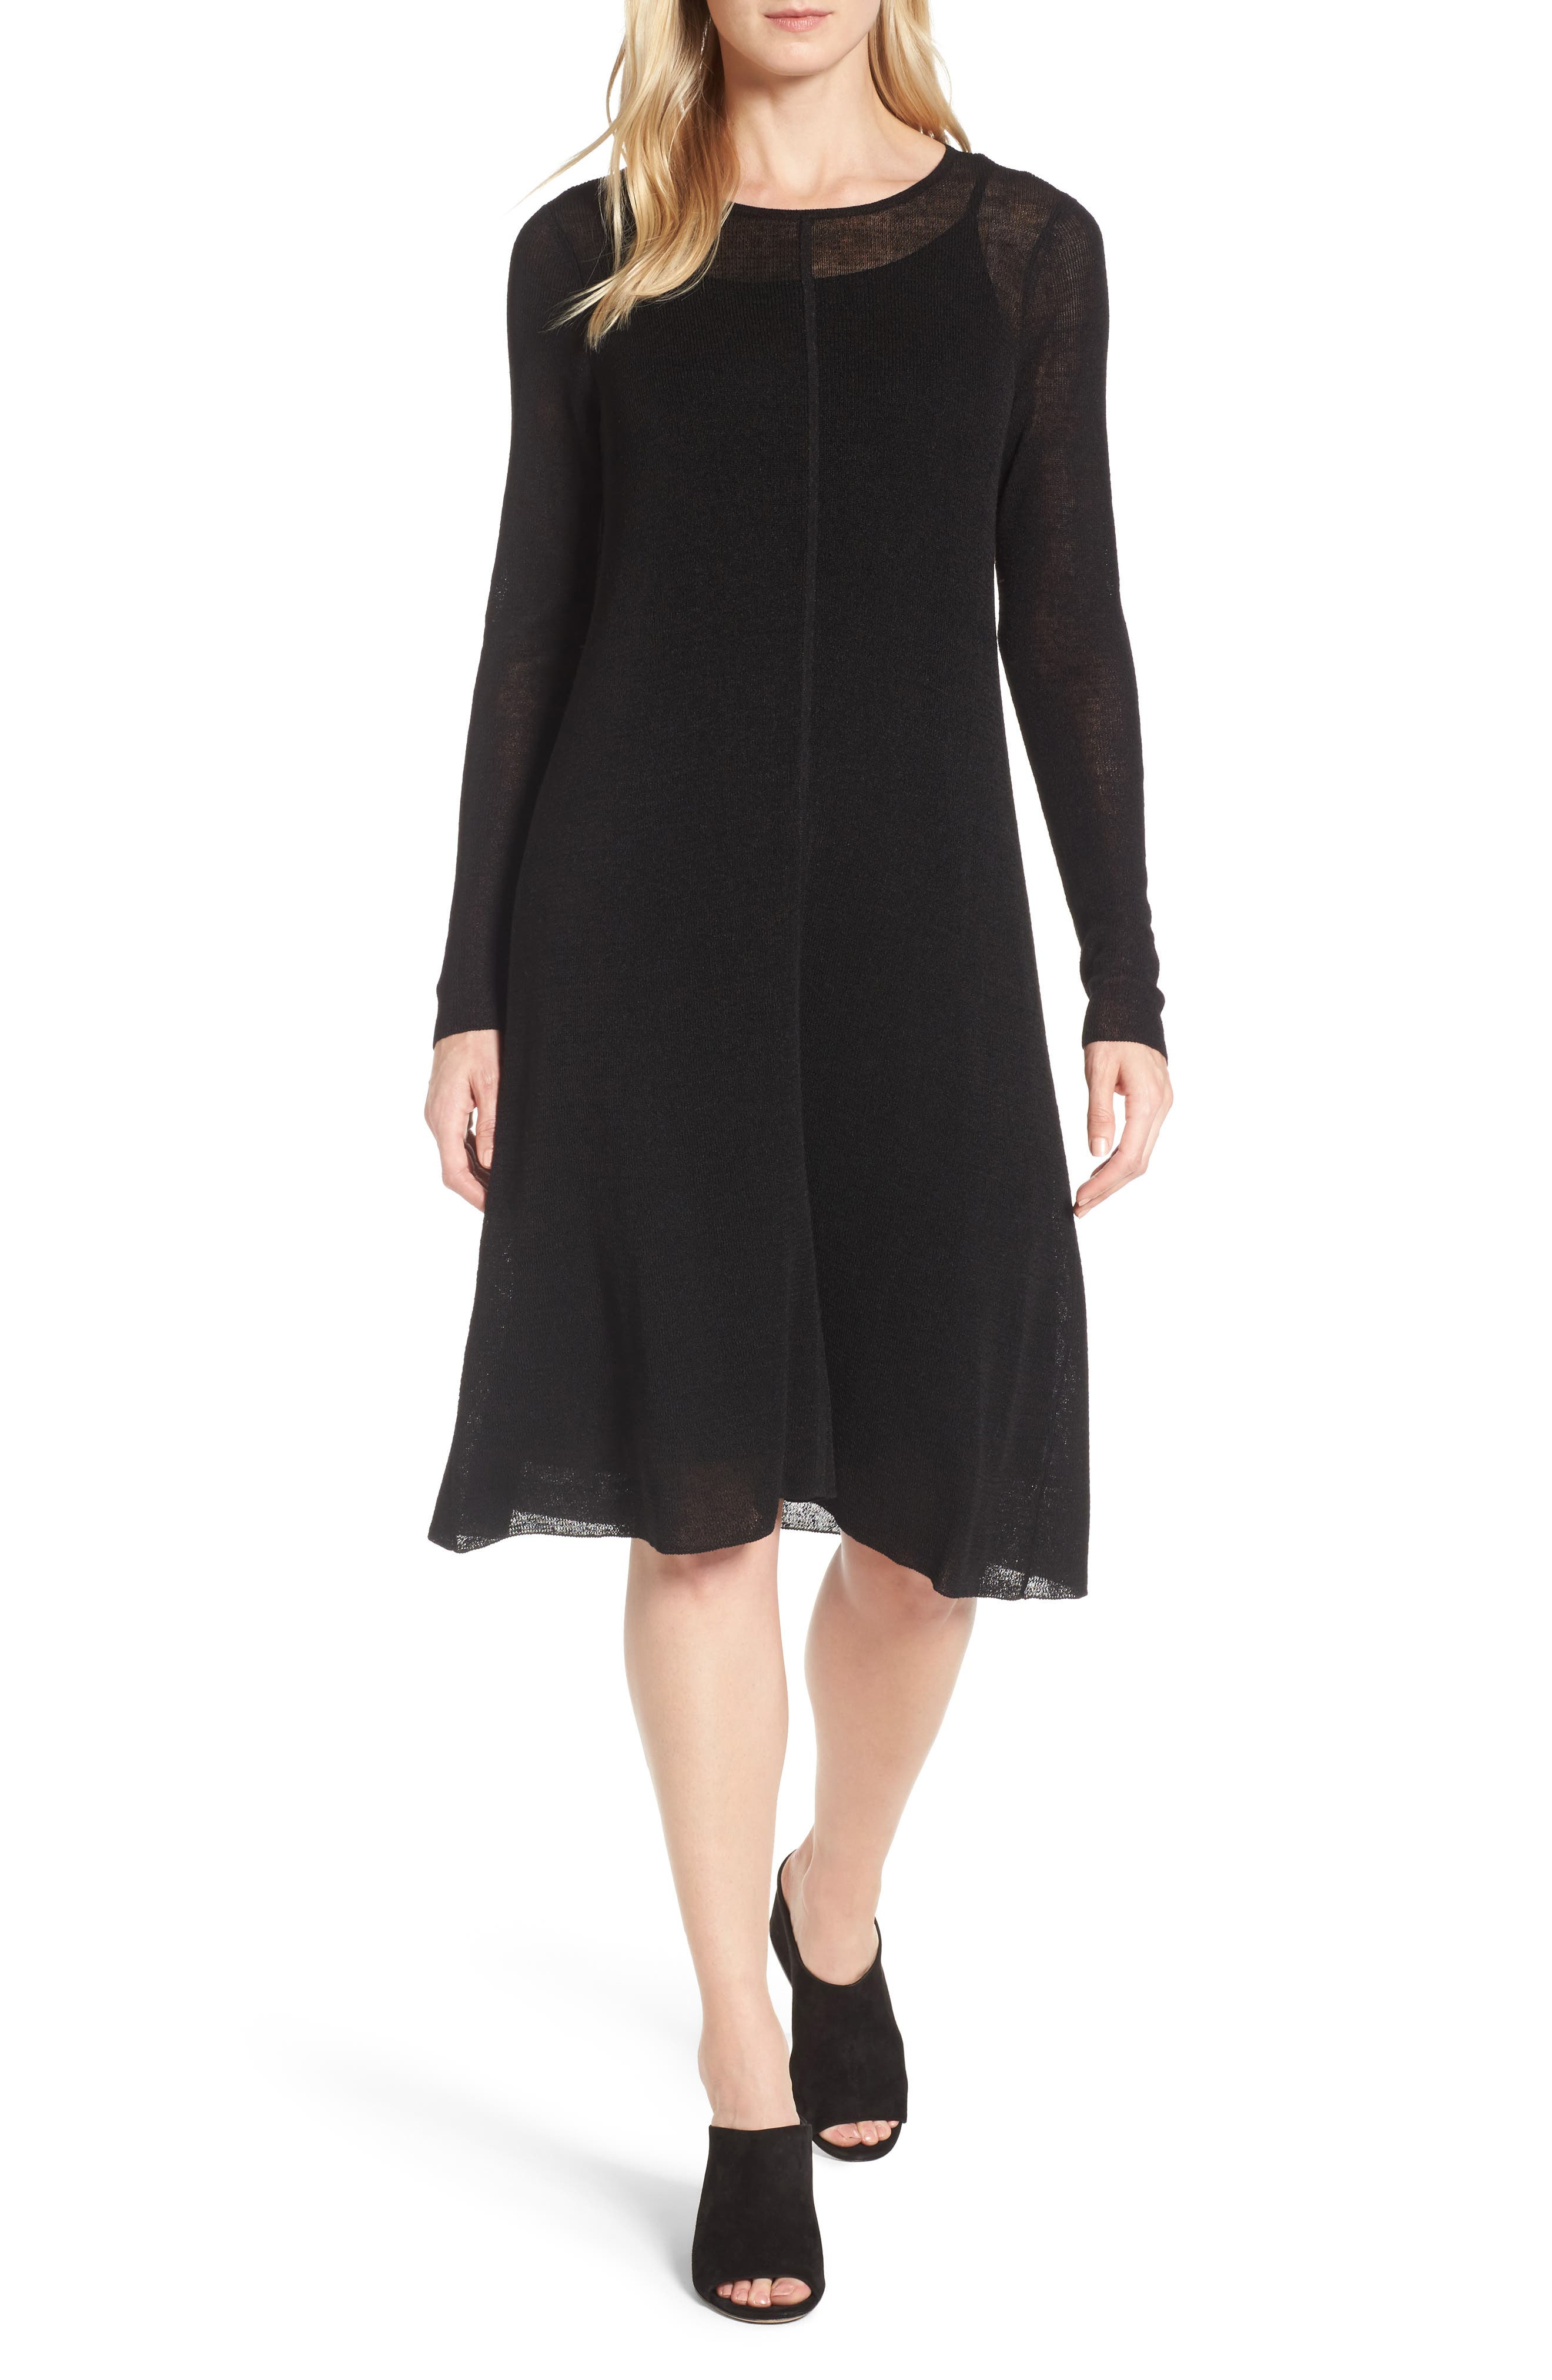 Alternate Image 1 Selected - Eileen Fisher Organic Linen Blend A-Line Dress